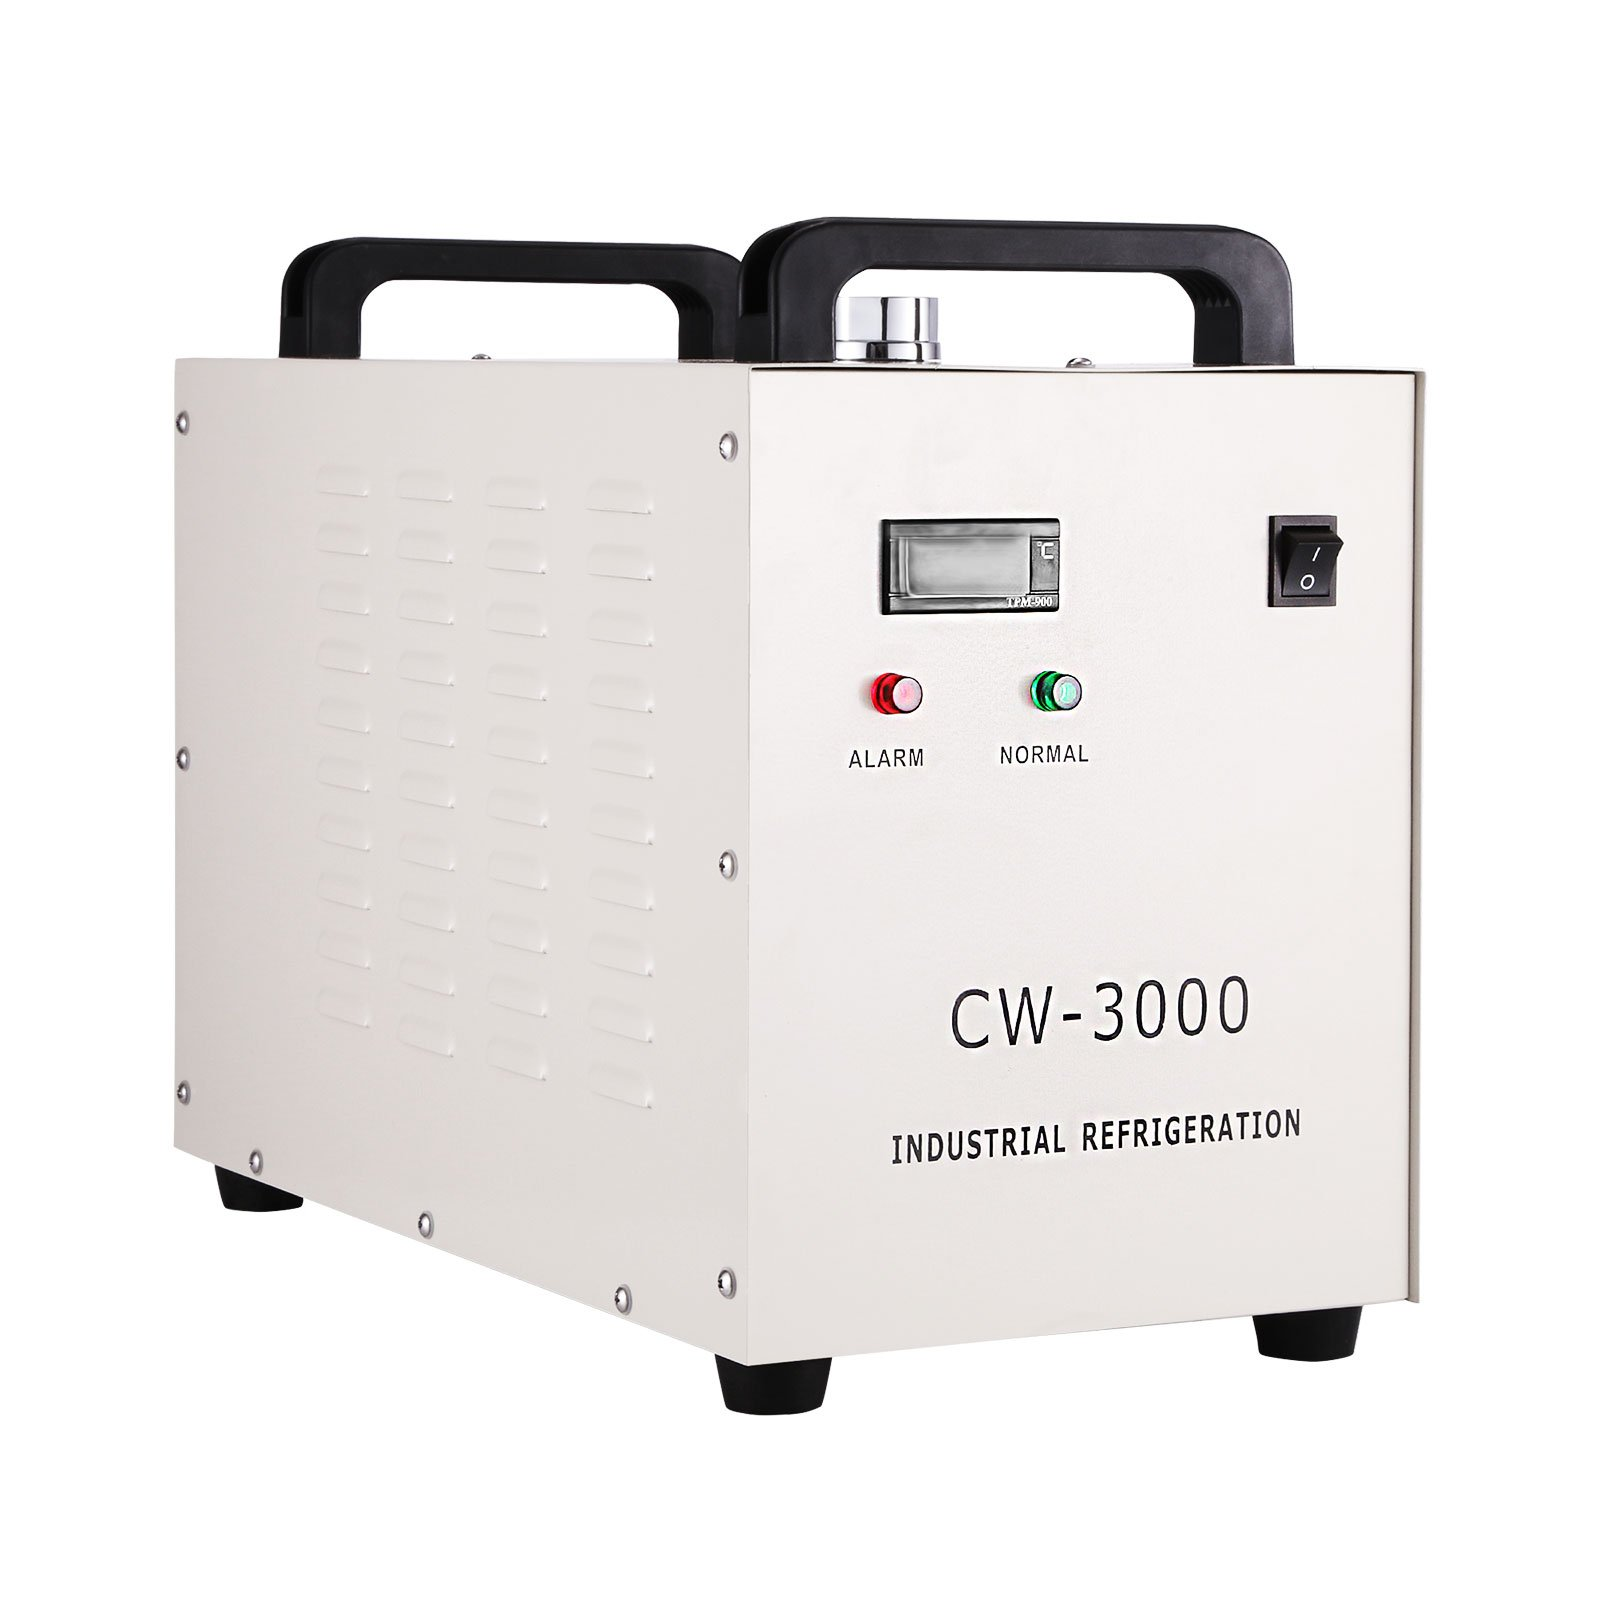 Mophorn Water Chiller 9L Capacity Industrial Water Chiller CW-3000DG Thermolysis Type Industrial Water Cooling Chiller for 60W 80W Laser Engraving Machine(CW-3000DG) by Mophorn